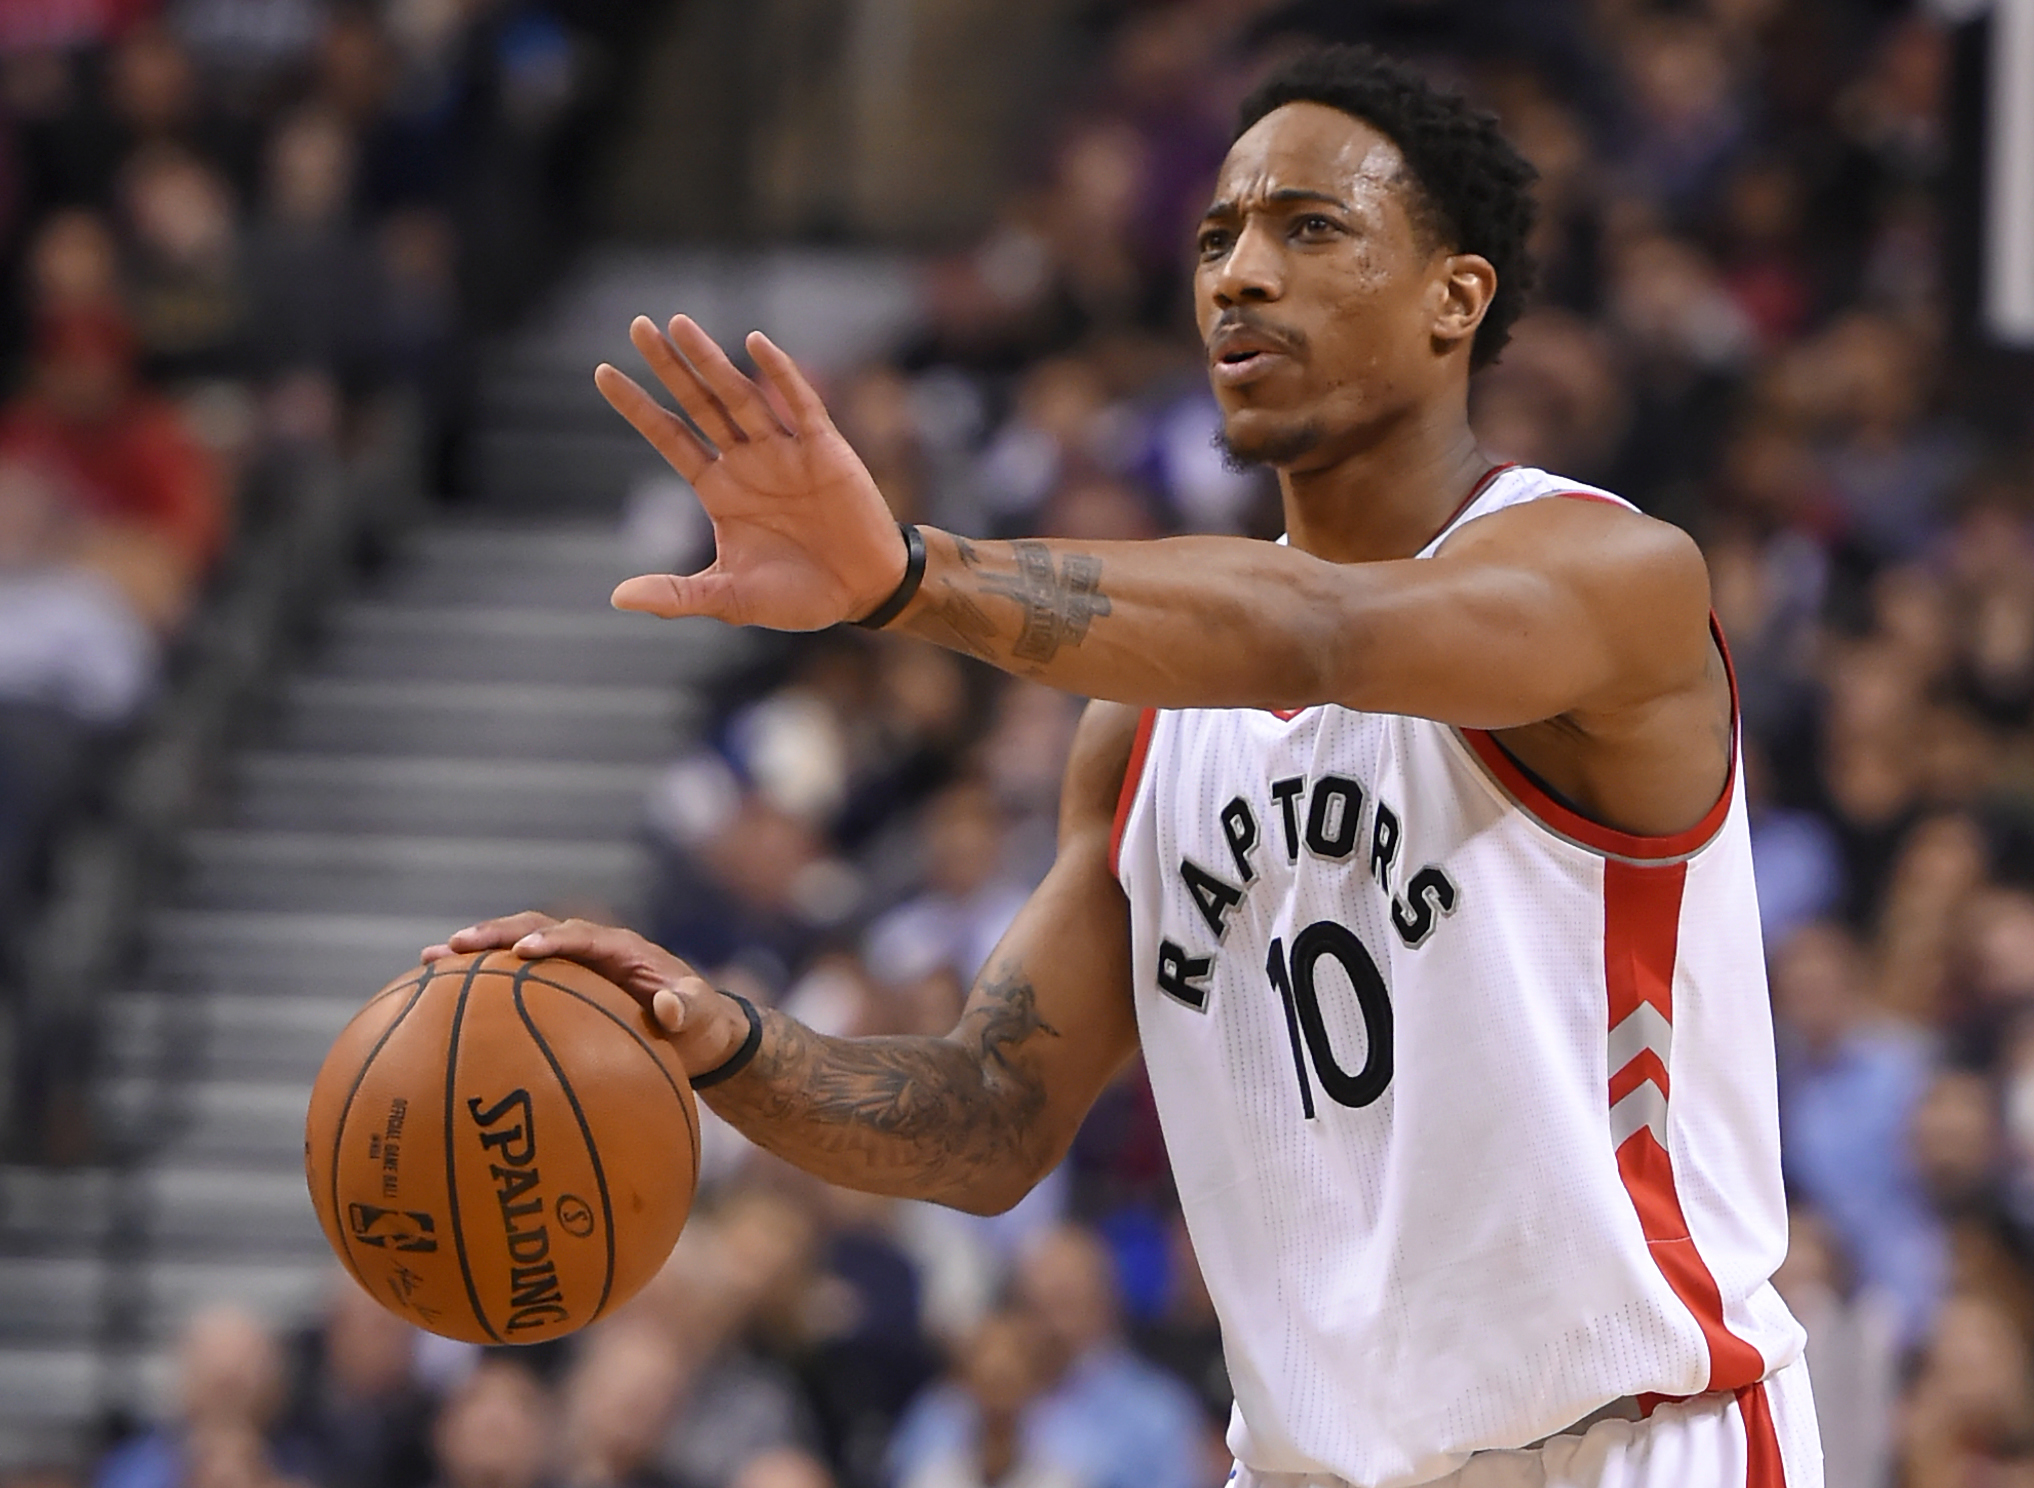 Feb 6, 2017; Toronto, Ontario, CAN; Toronto Raptors guard DeMar DeRozan (10) gestures from the court during the fourth quarter against the Los Angeles Clippers at Air Canada Centre. The Raptors won 118-109. Mandatory Credit: Dan Hamilton-USA TODAY Sports